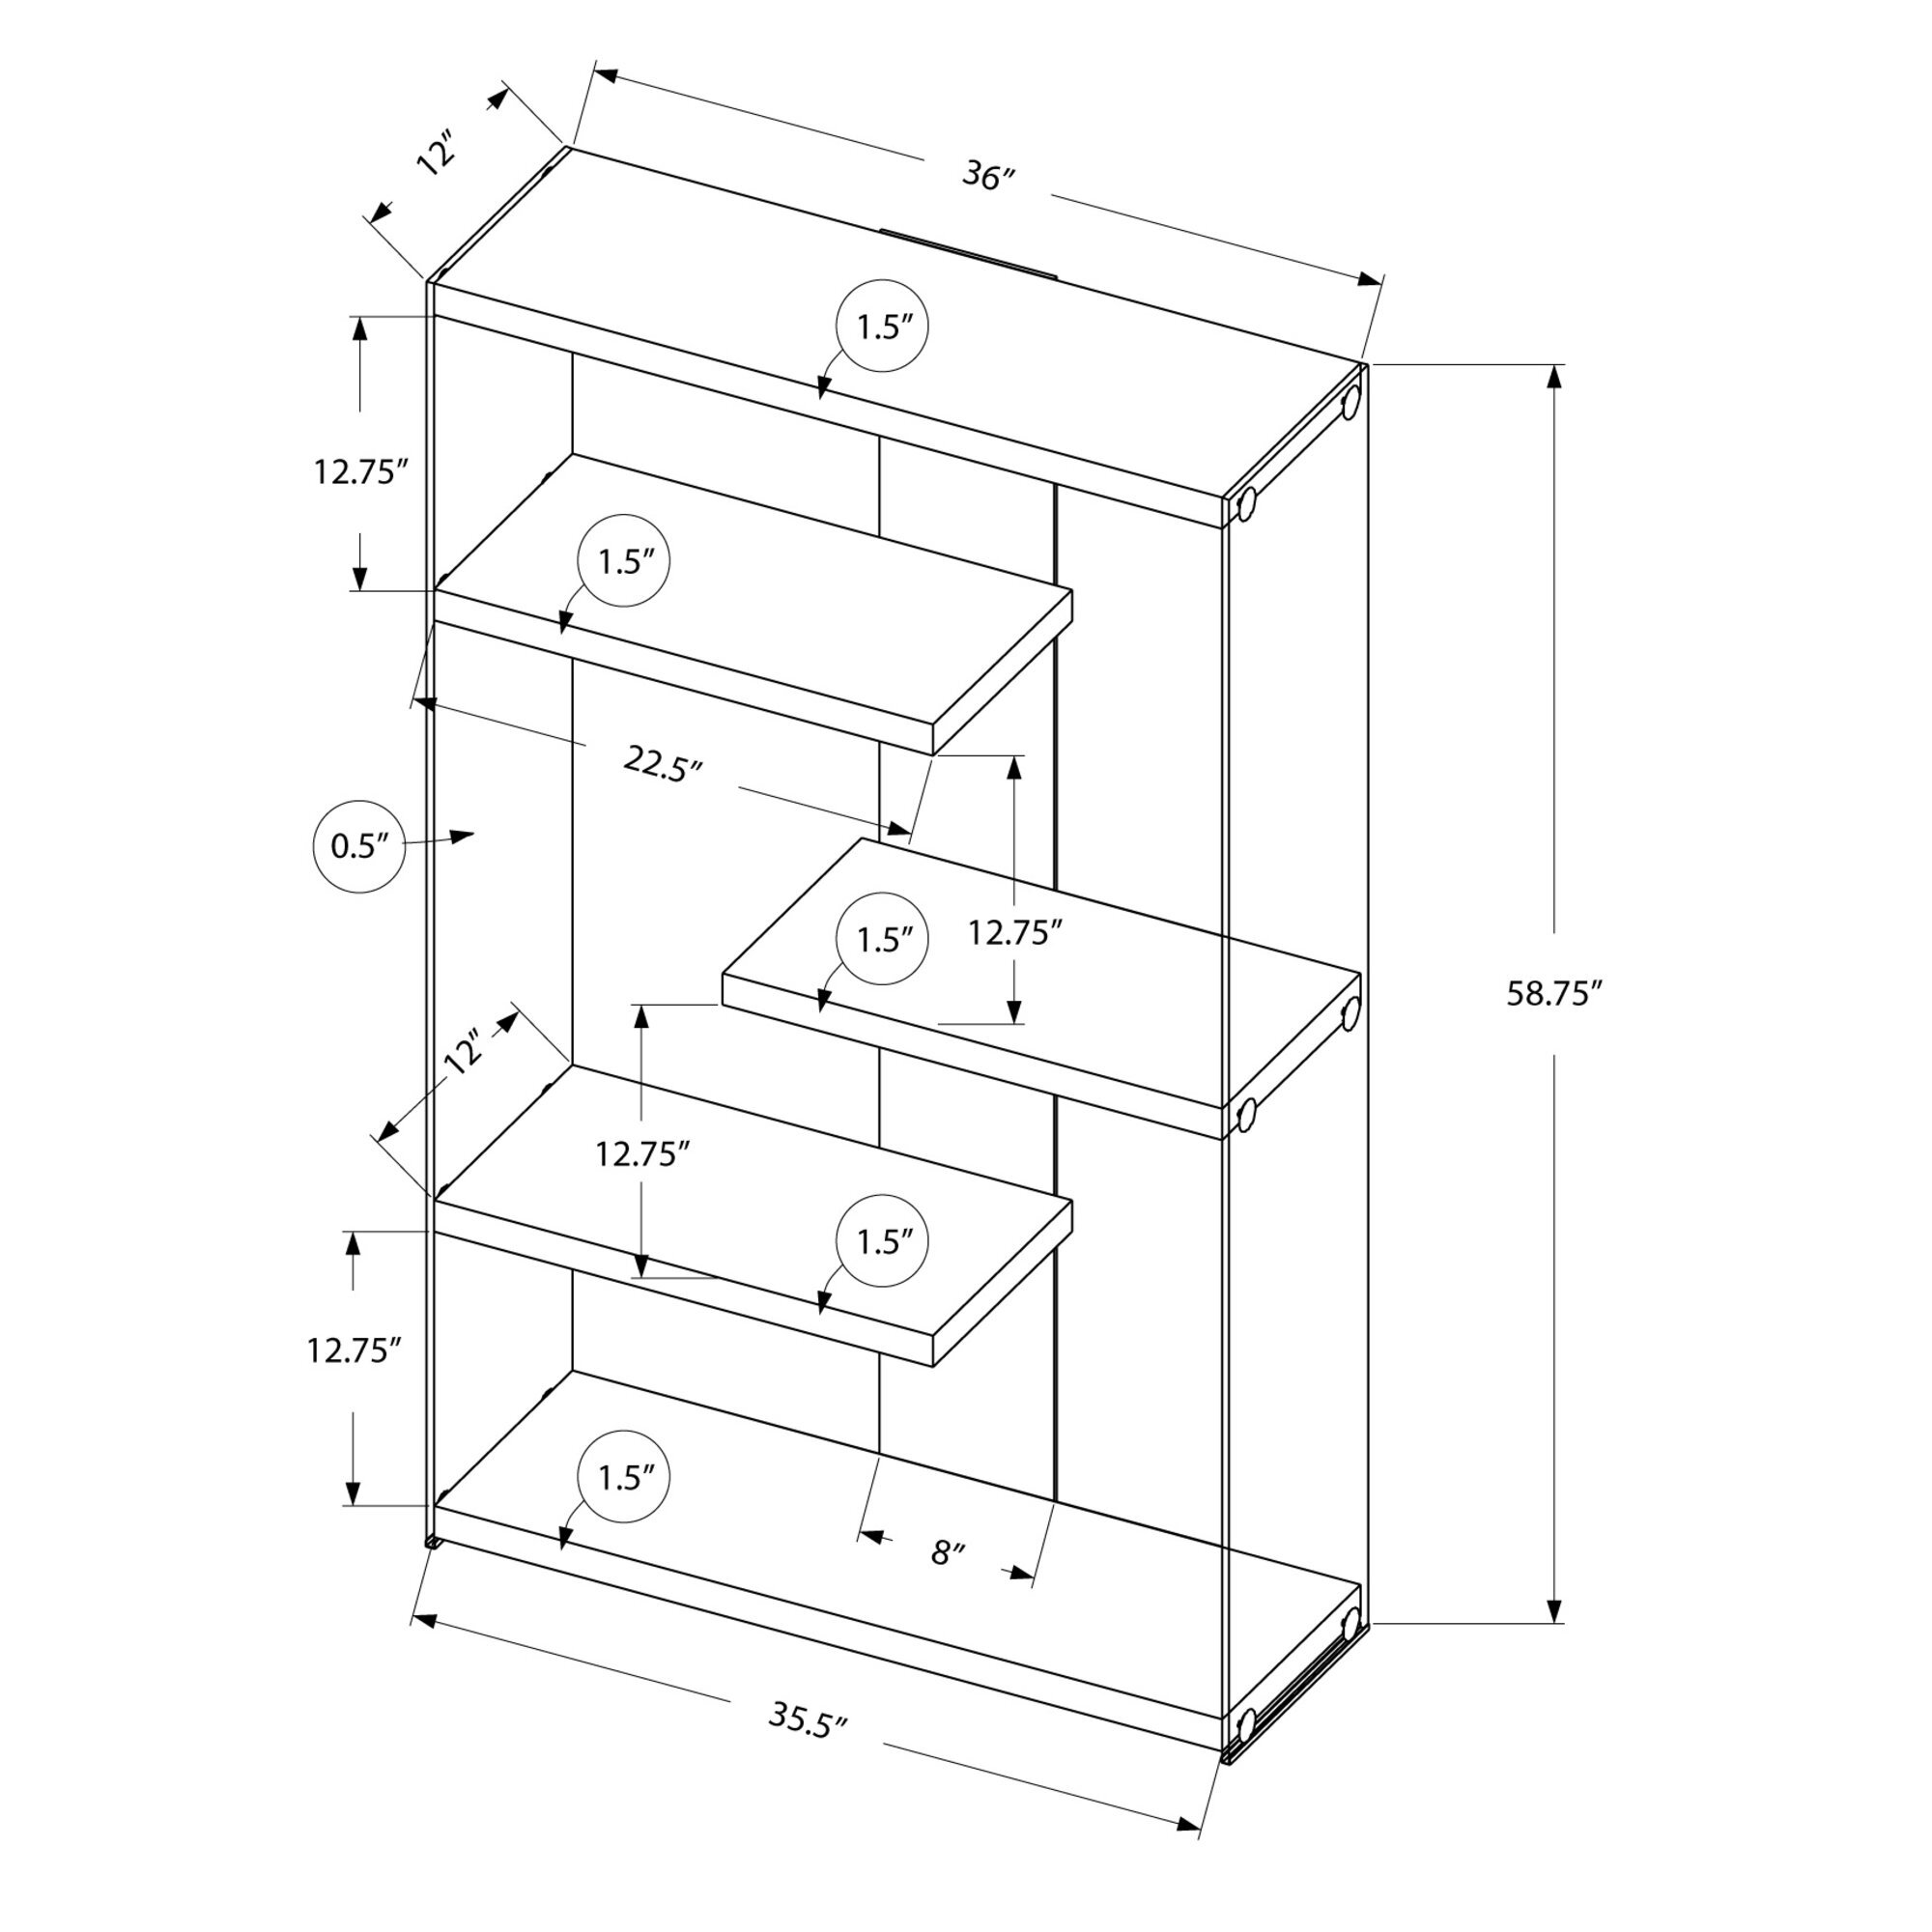 Wooden Bookcase Clip Art 128081 also Eco House Design as well Perspective Drawing moreover plicated Ikea Instructions likewise Adidas Soccer Training Pants. on bookcase for home office